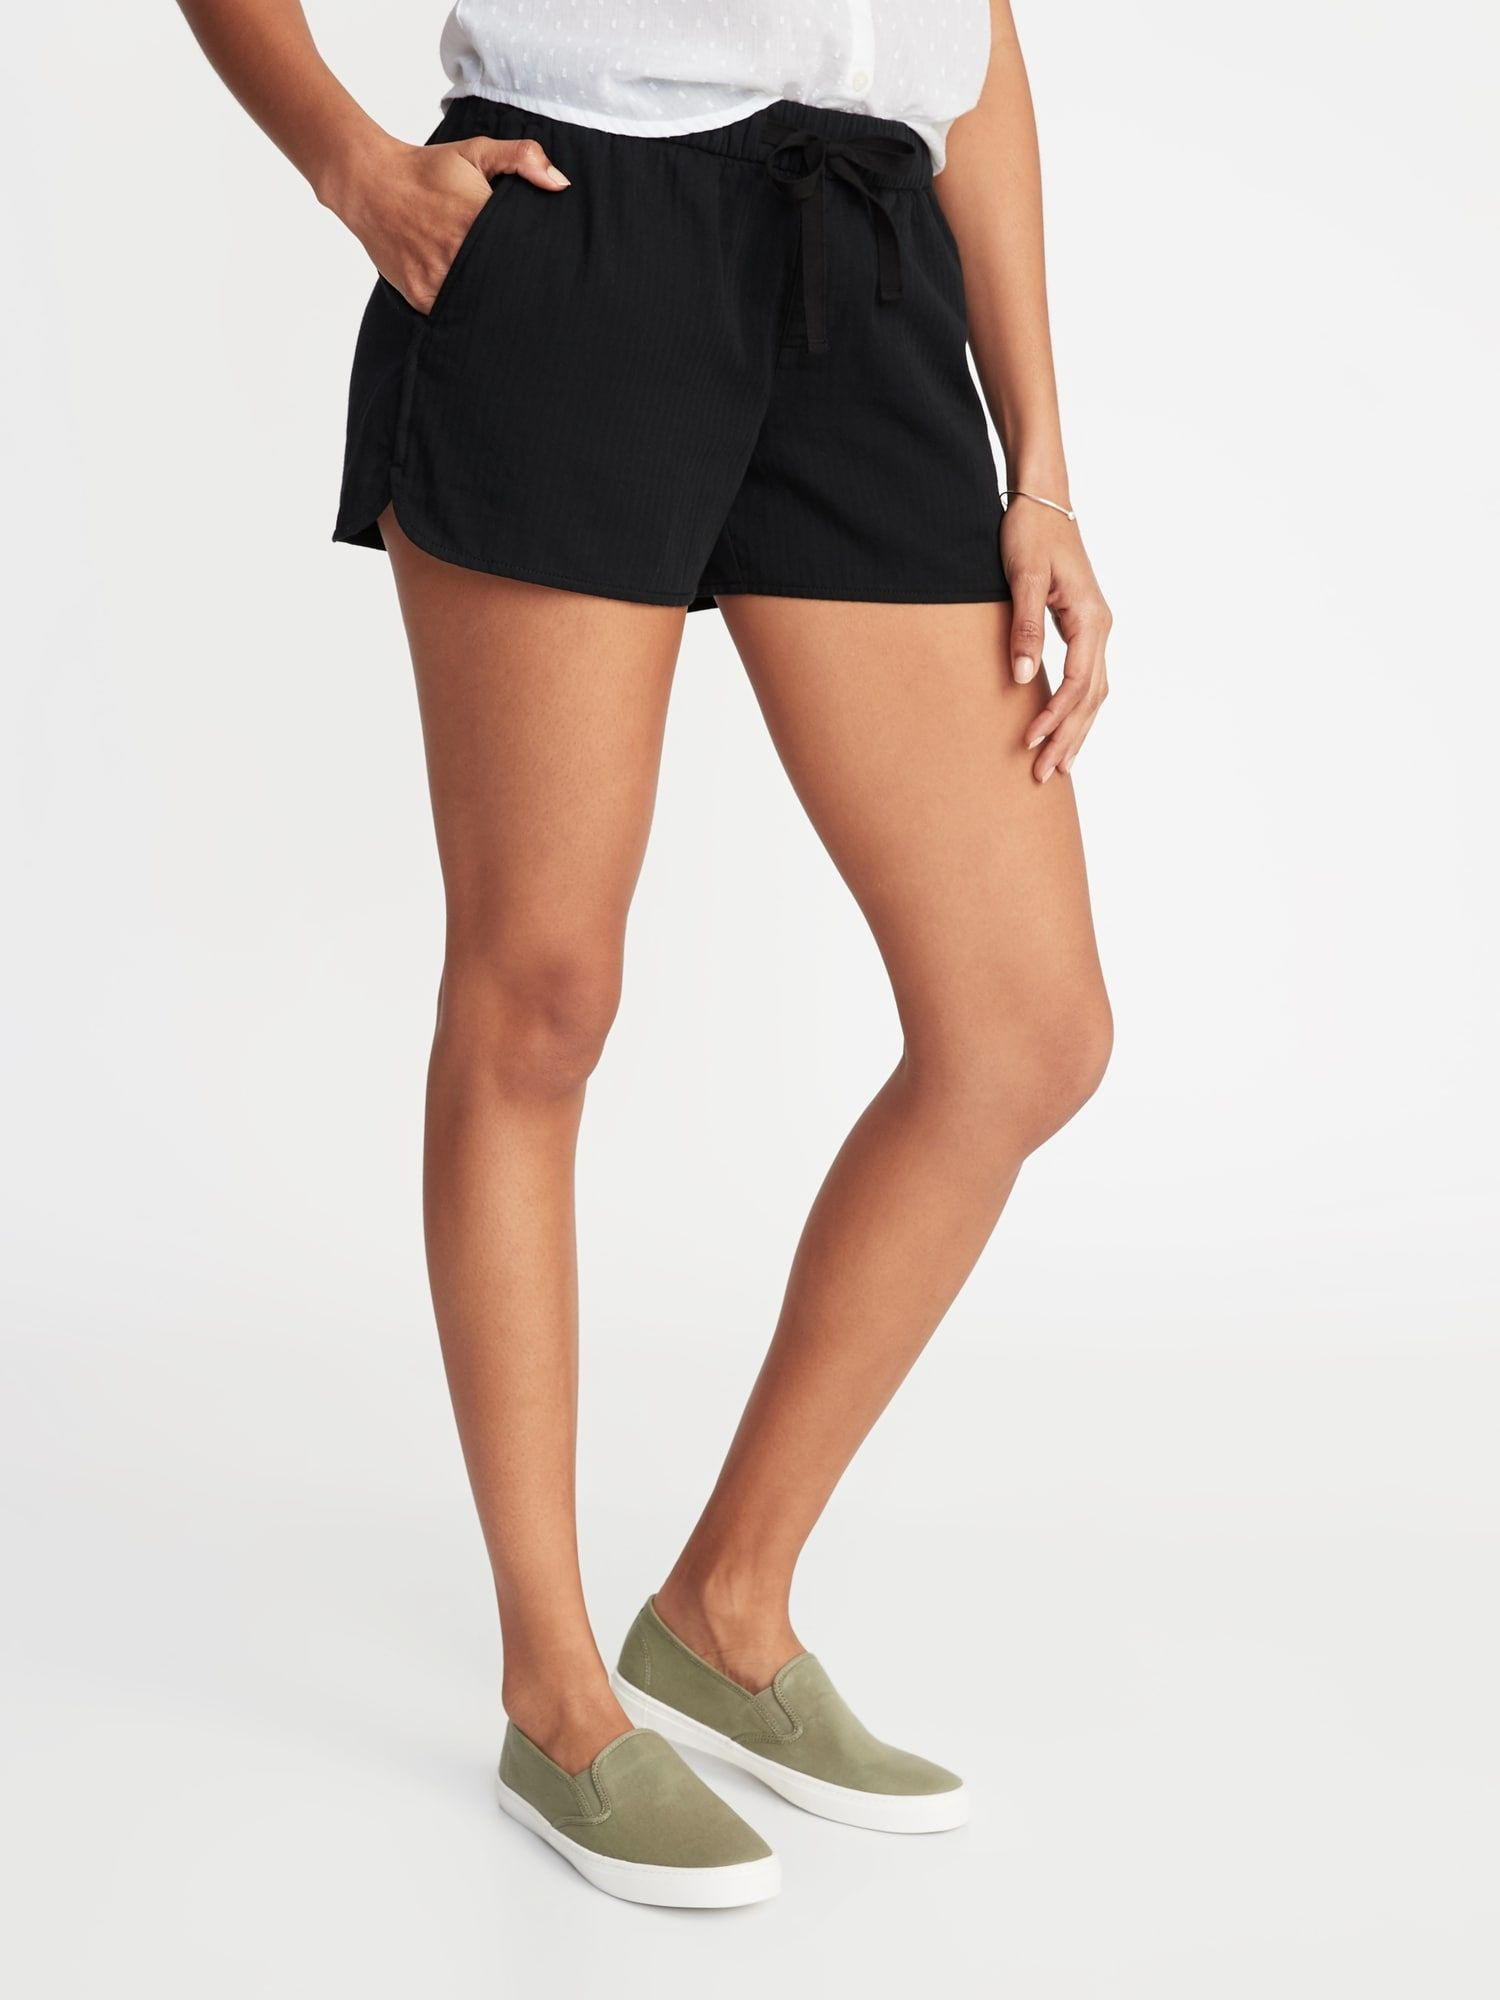 ca7e0d28f4d36 Mid-Rise Twill Pull-On Shorts for Women - 4-inch inseam in 2019 ...